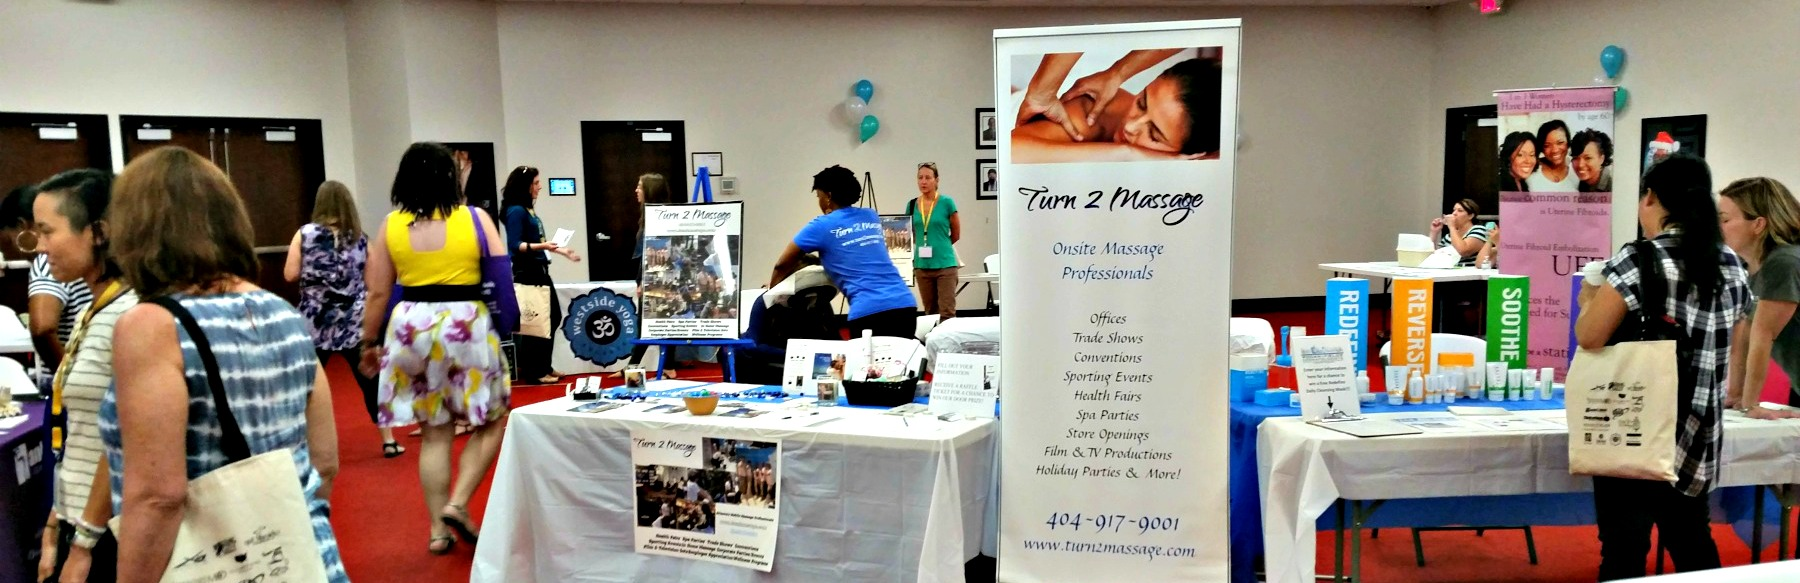 Chair massage at health fairs and wellness events in Atlanta,GA